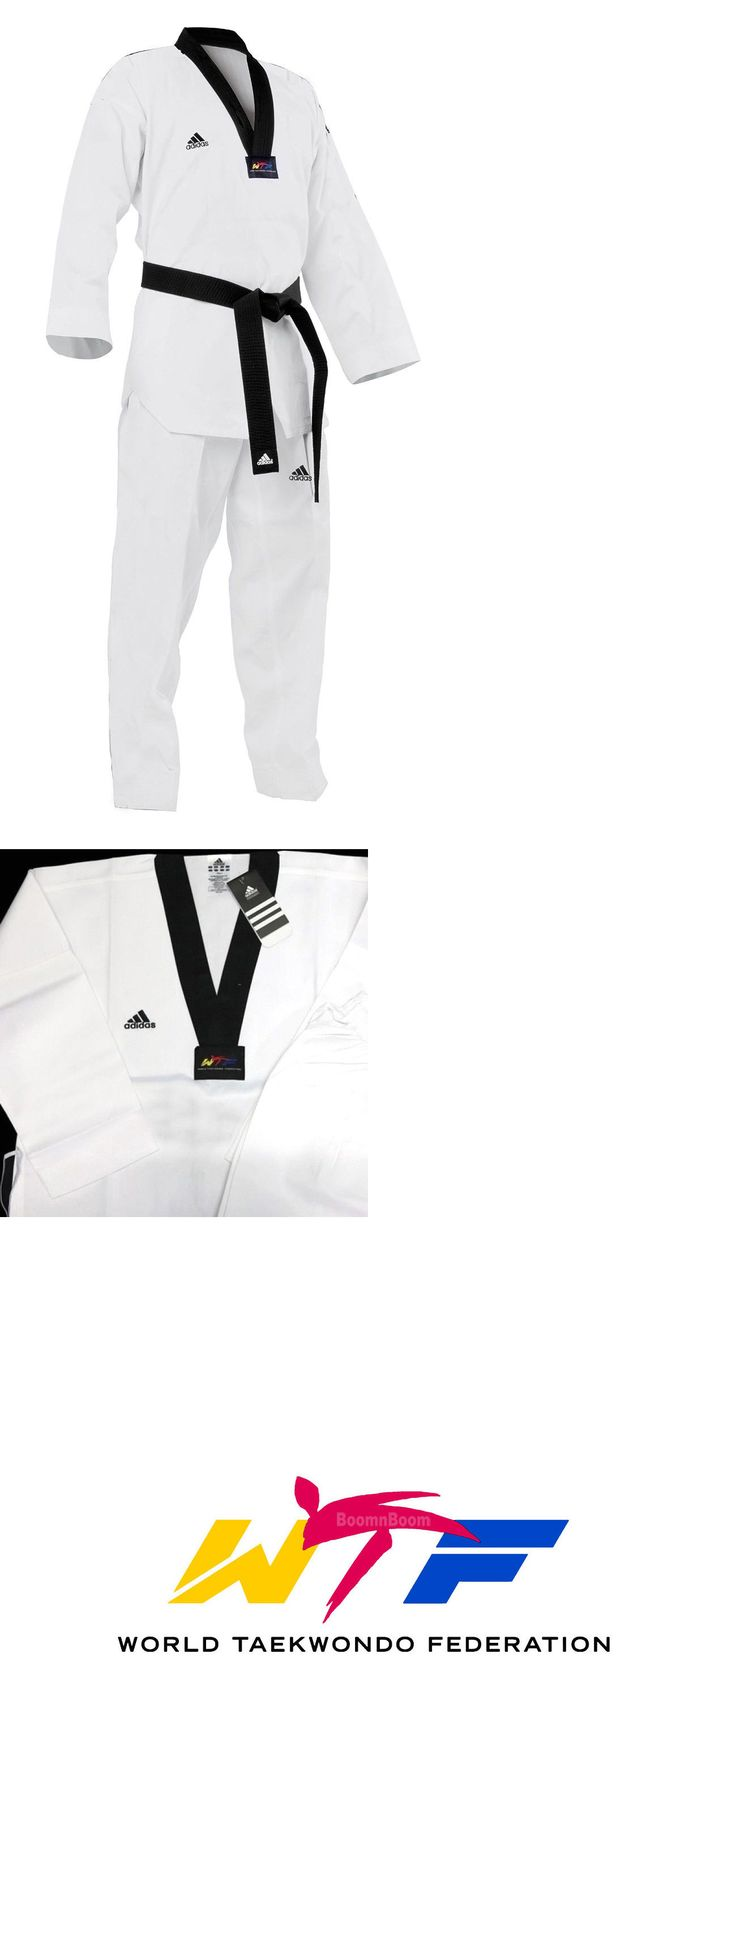 Uniforms and Gis 179774: New Adidas Taekwondo Uniform Adi-Club Tkd Dobok Set W/ White,Black V Neck-Wtf -> BUY IT NOW ONLY: $57.99 on eBay!